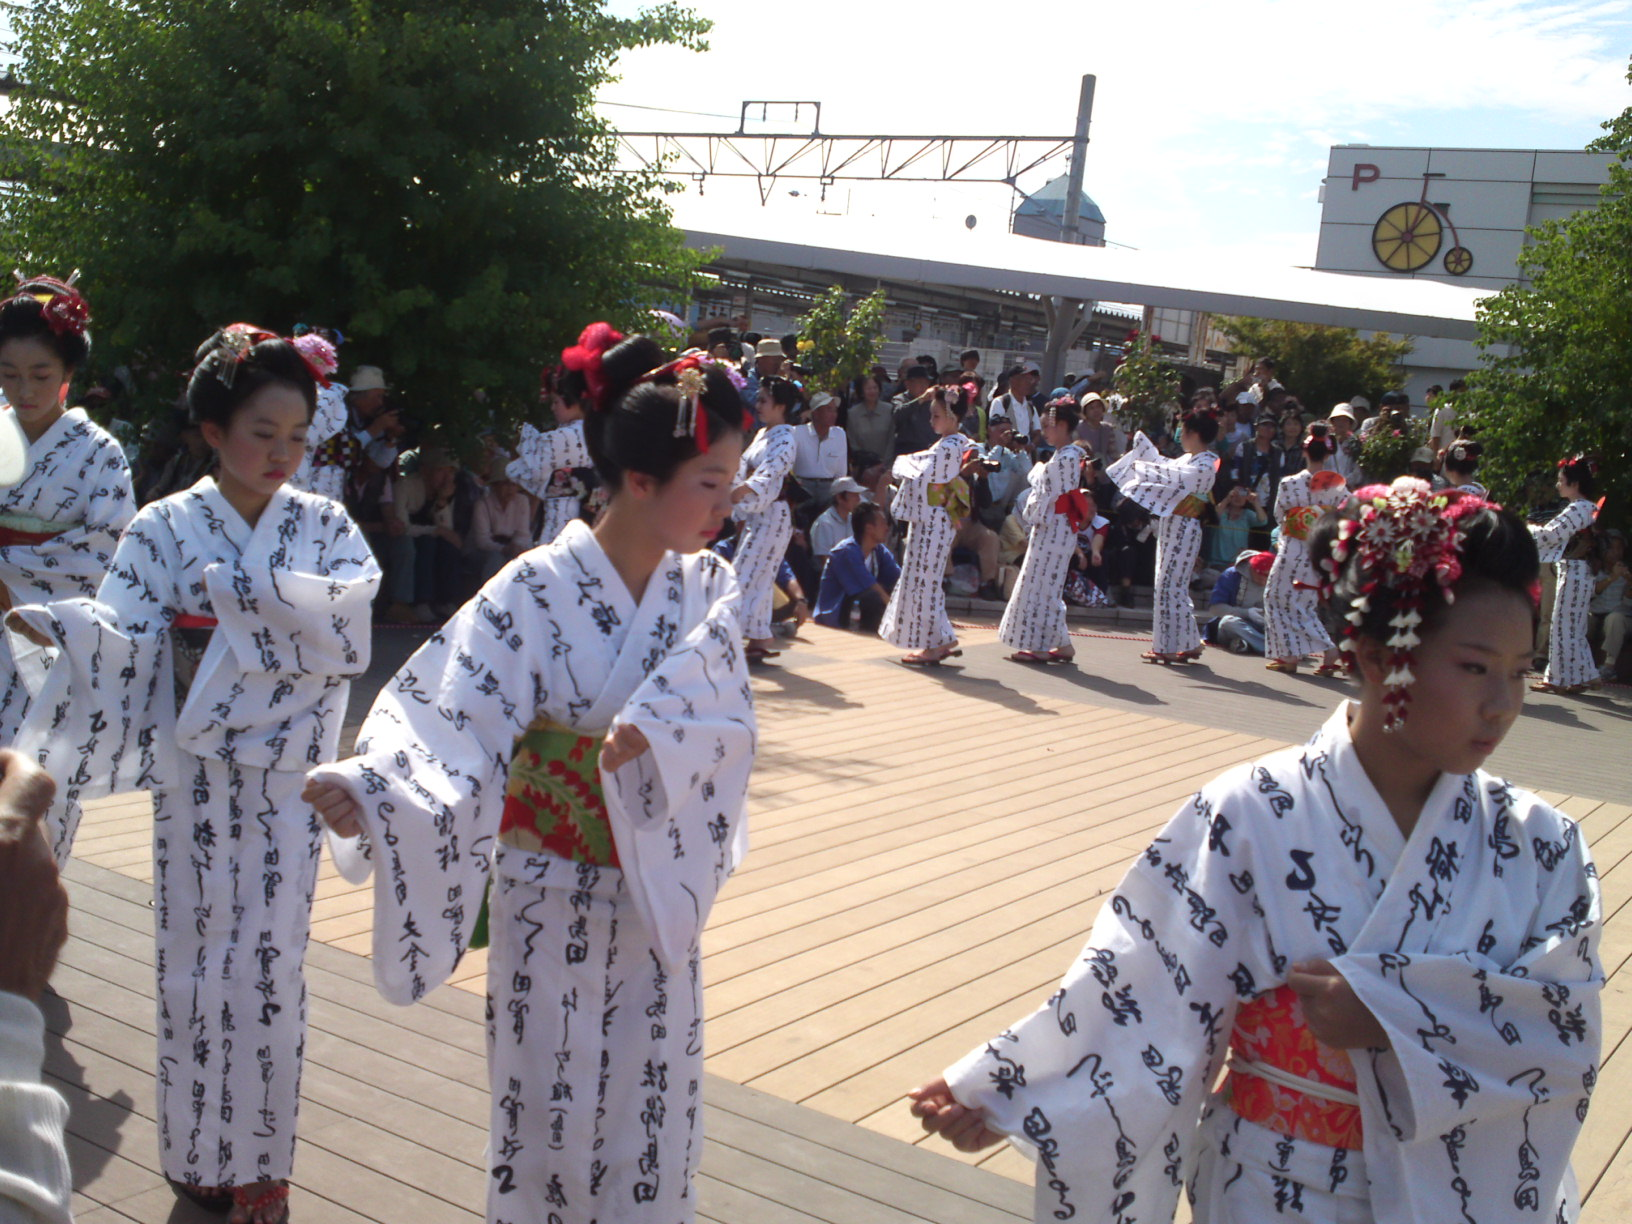 Mage (Topknot Hairstyle) Festival, Shimada